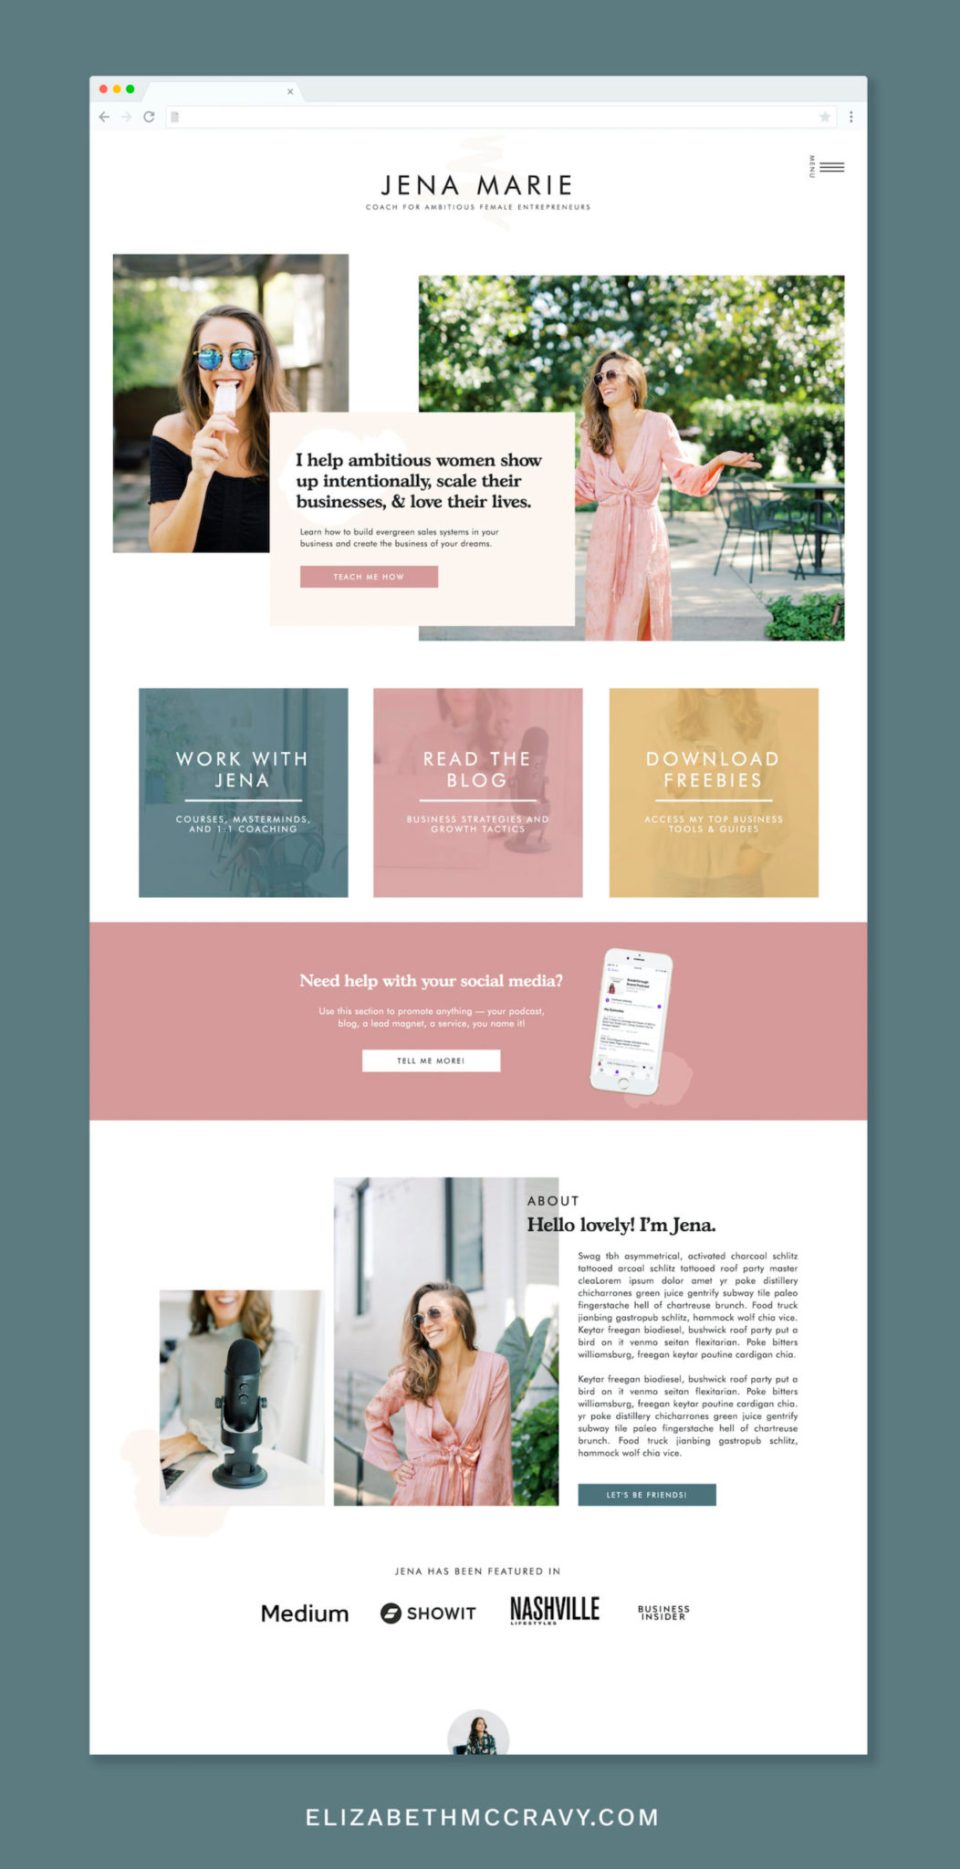 Jena website template for podcasters - Showit template for coaches, consultants, and virtual assistants.